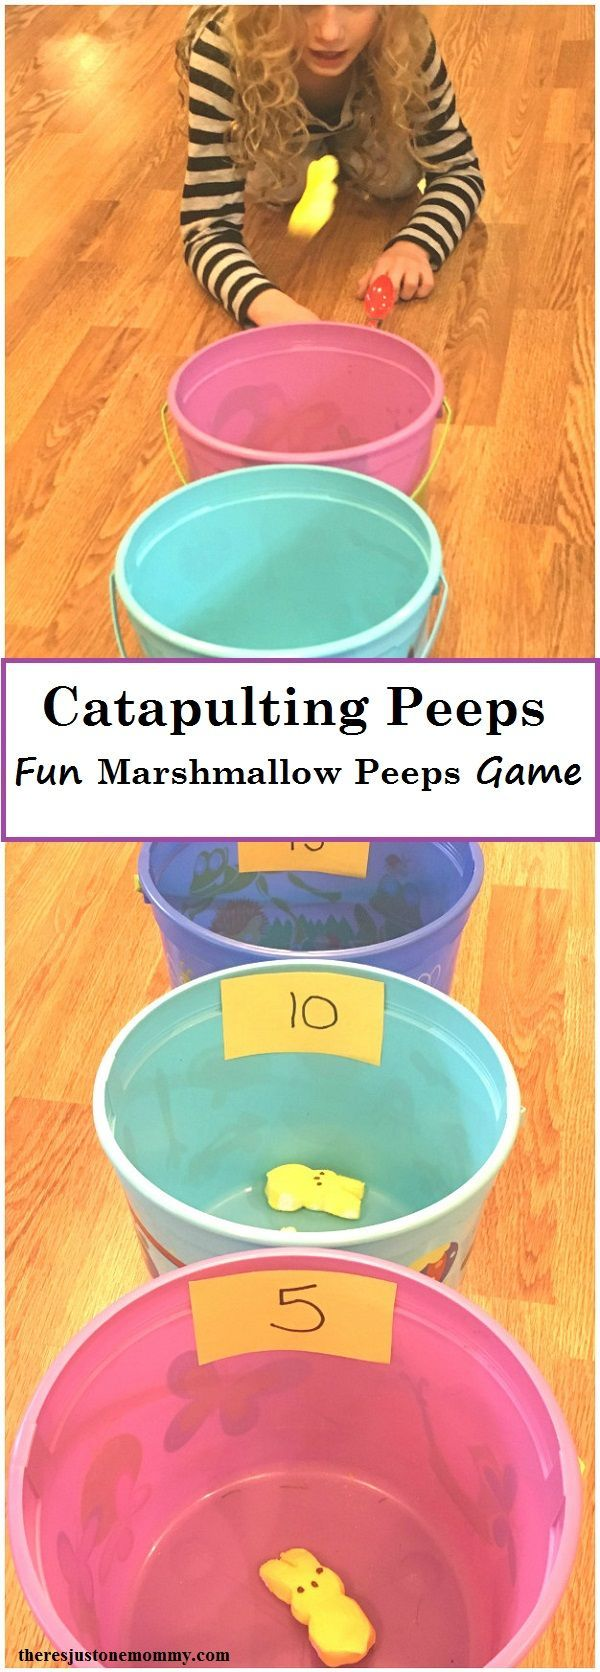 924 best seasons holiday resources for the autism classroom images catapulting peeps simple diy easter game marshmallow peeps activity solutioingenieria Gallery